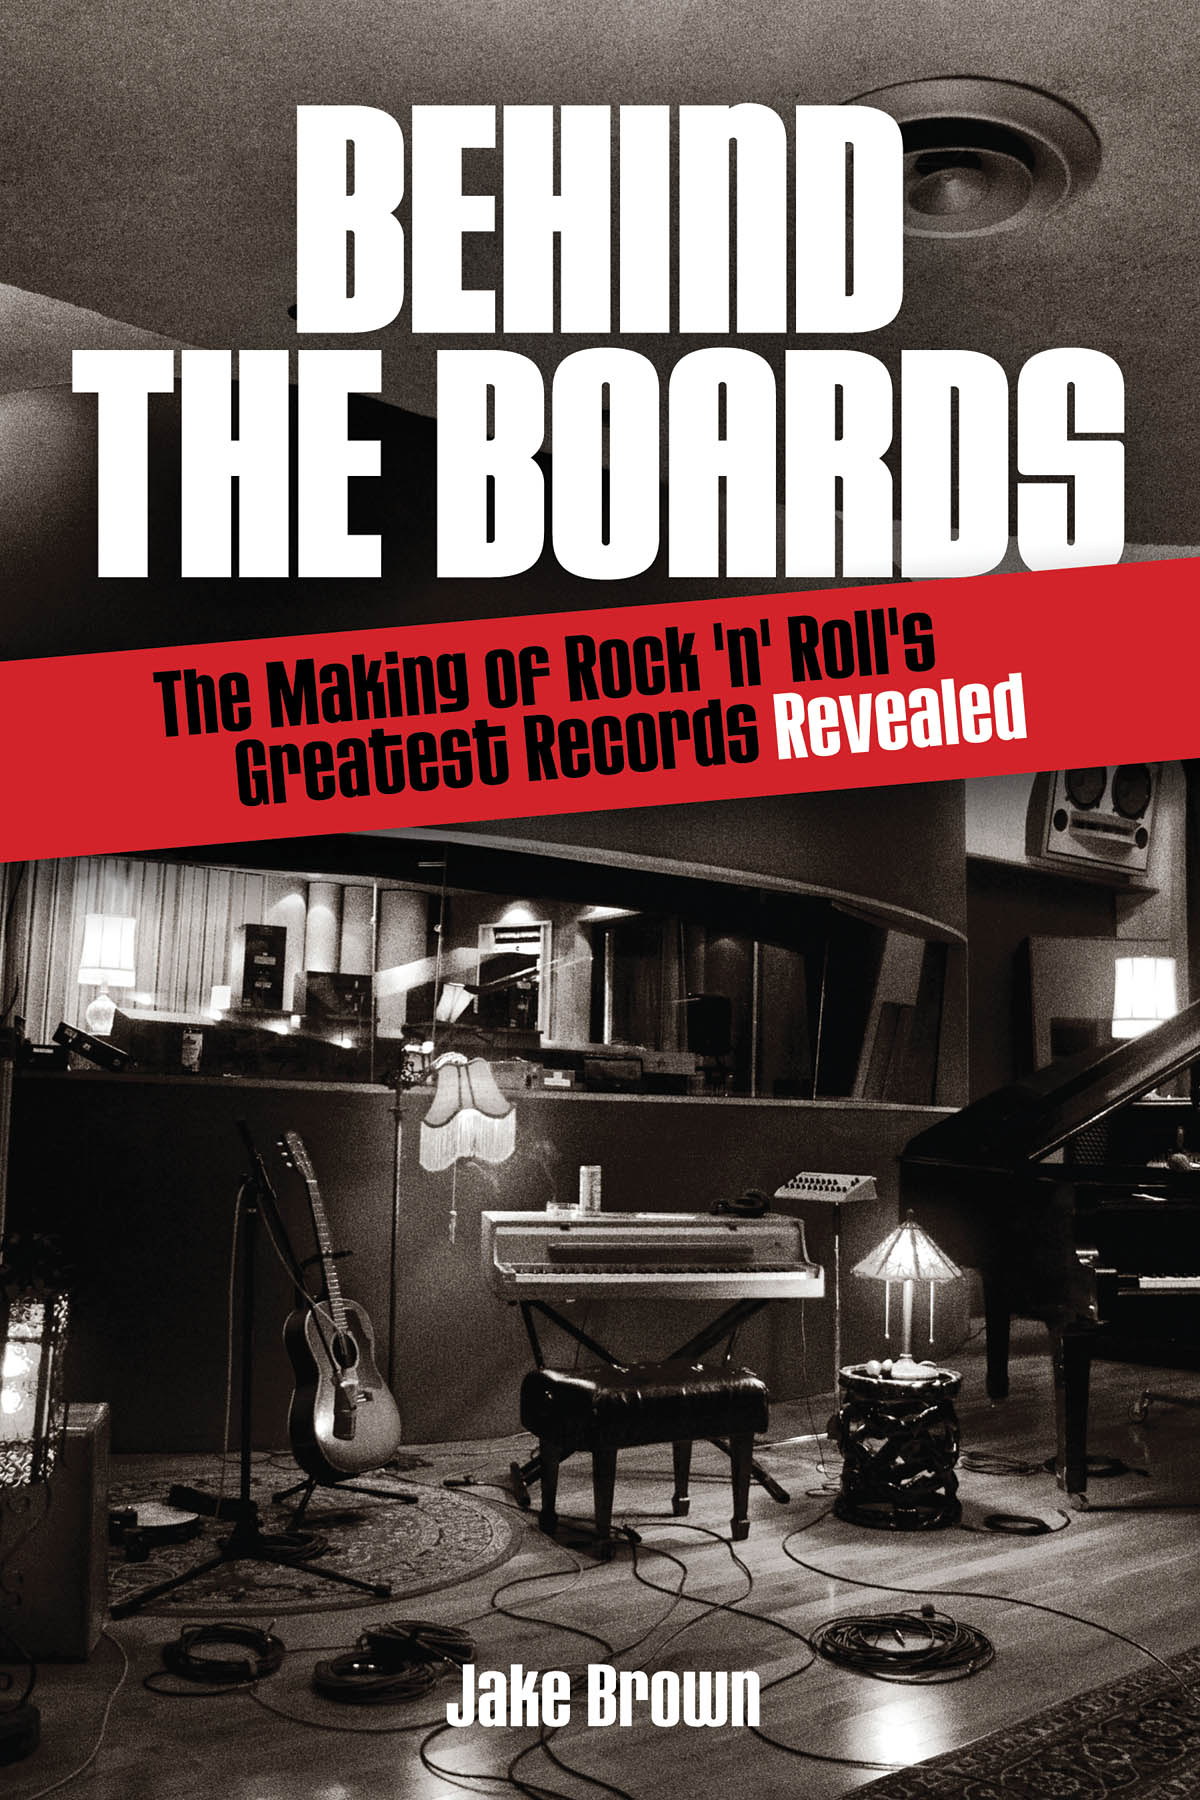 Behind the Boards: Reference Books: History